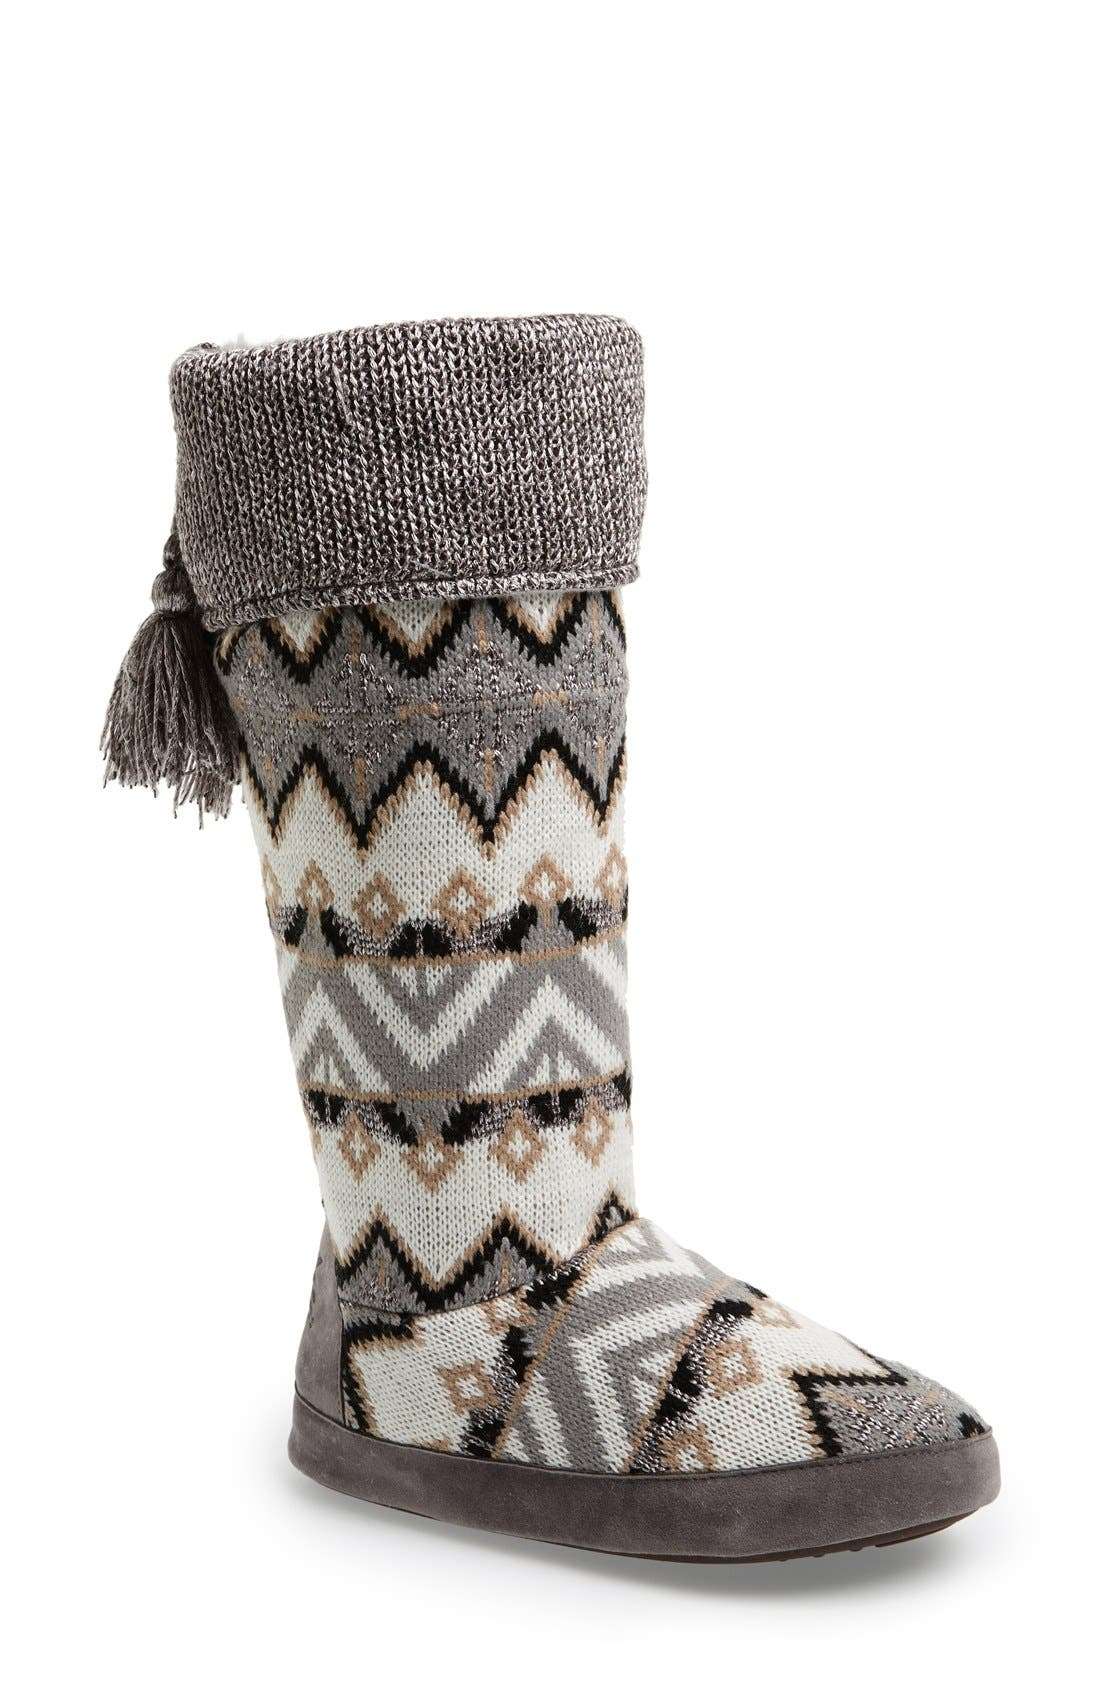 Alternate Image 1 Selected - MUK LUKS 'Winona' Slouchy Bootie Slipper